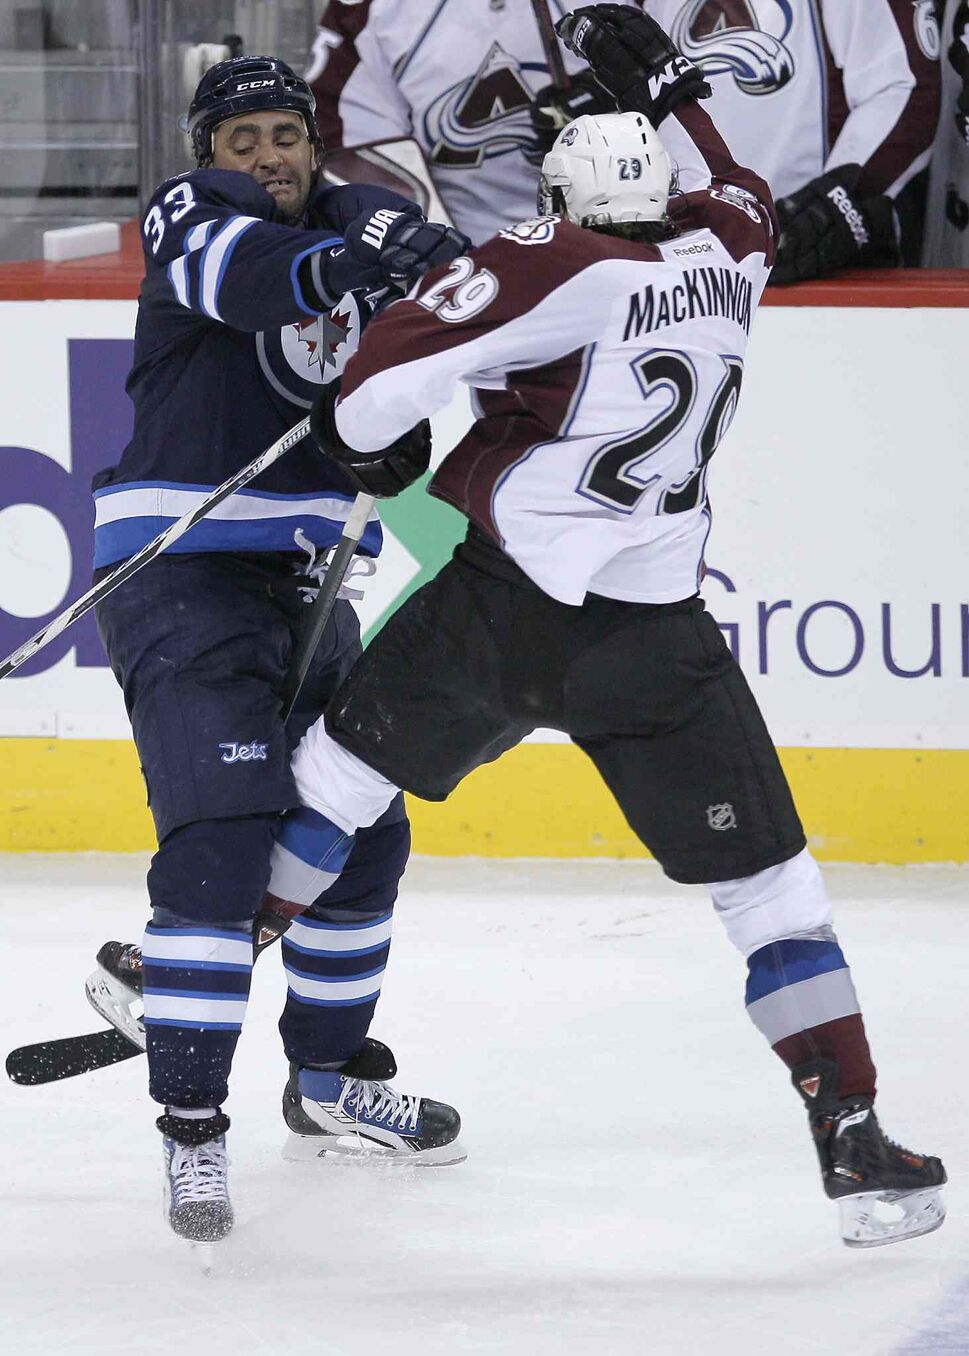 Winnipeg Jets' Dustin Byfuglien (left) and Colorado Avalanche's Nathan MacKinnon collide in the third period. (JOHN WOODS / THE CANADIAN PRESS)